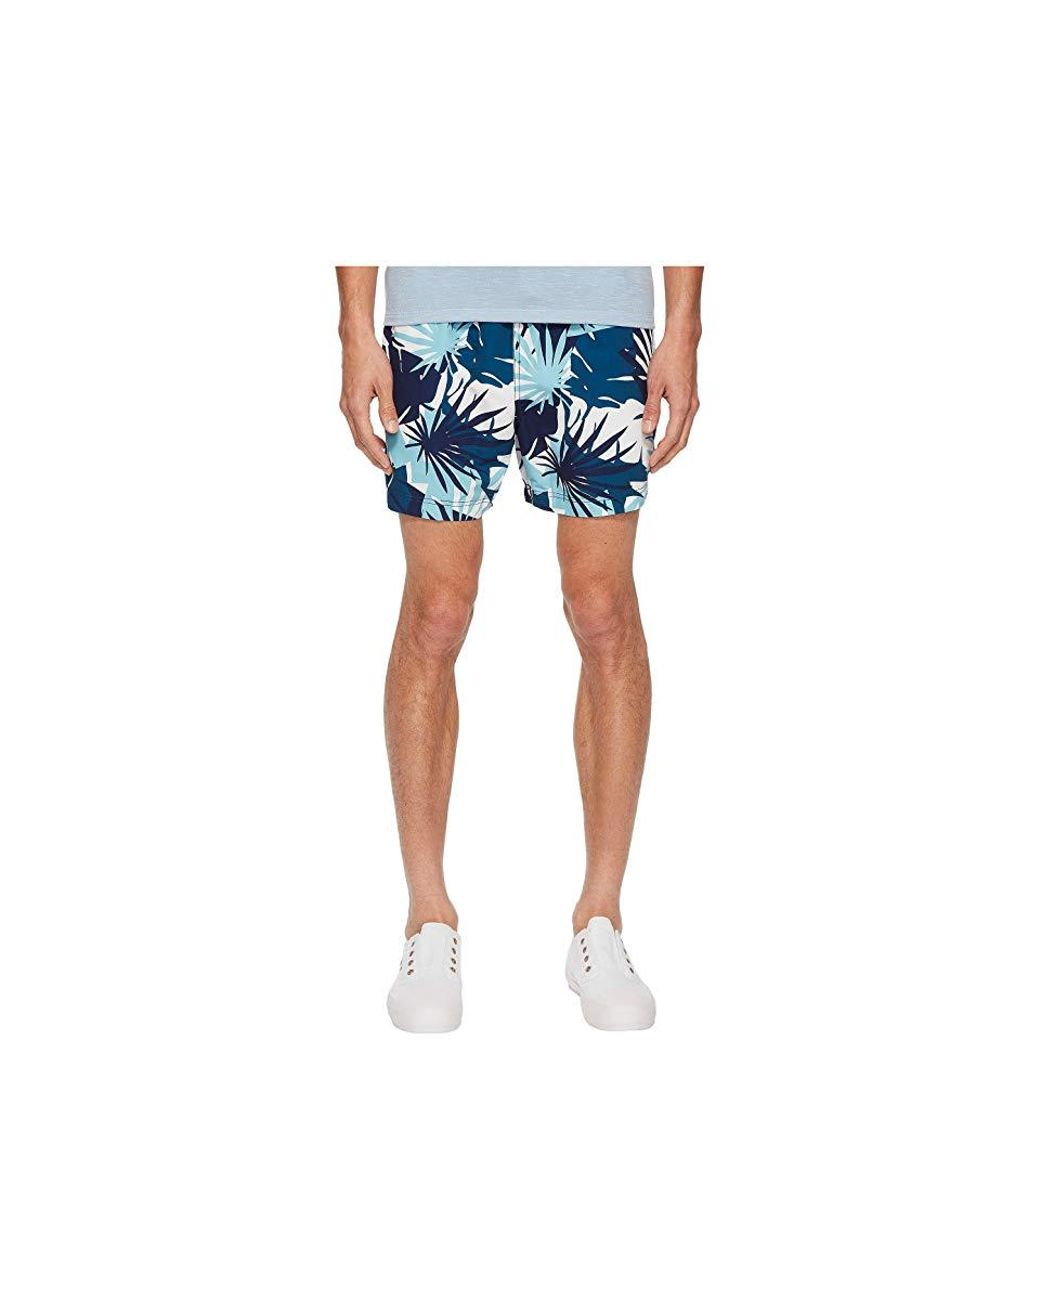 ed0196d16706d Onia Charles 5 Cote D'azure Palms Swim Shorts (aegean Sea Multi) Swimwear  in Blue for Men - Save 25% - Lyst